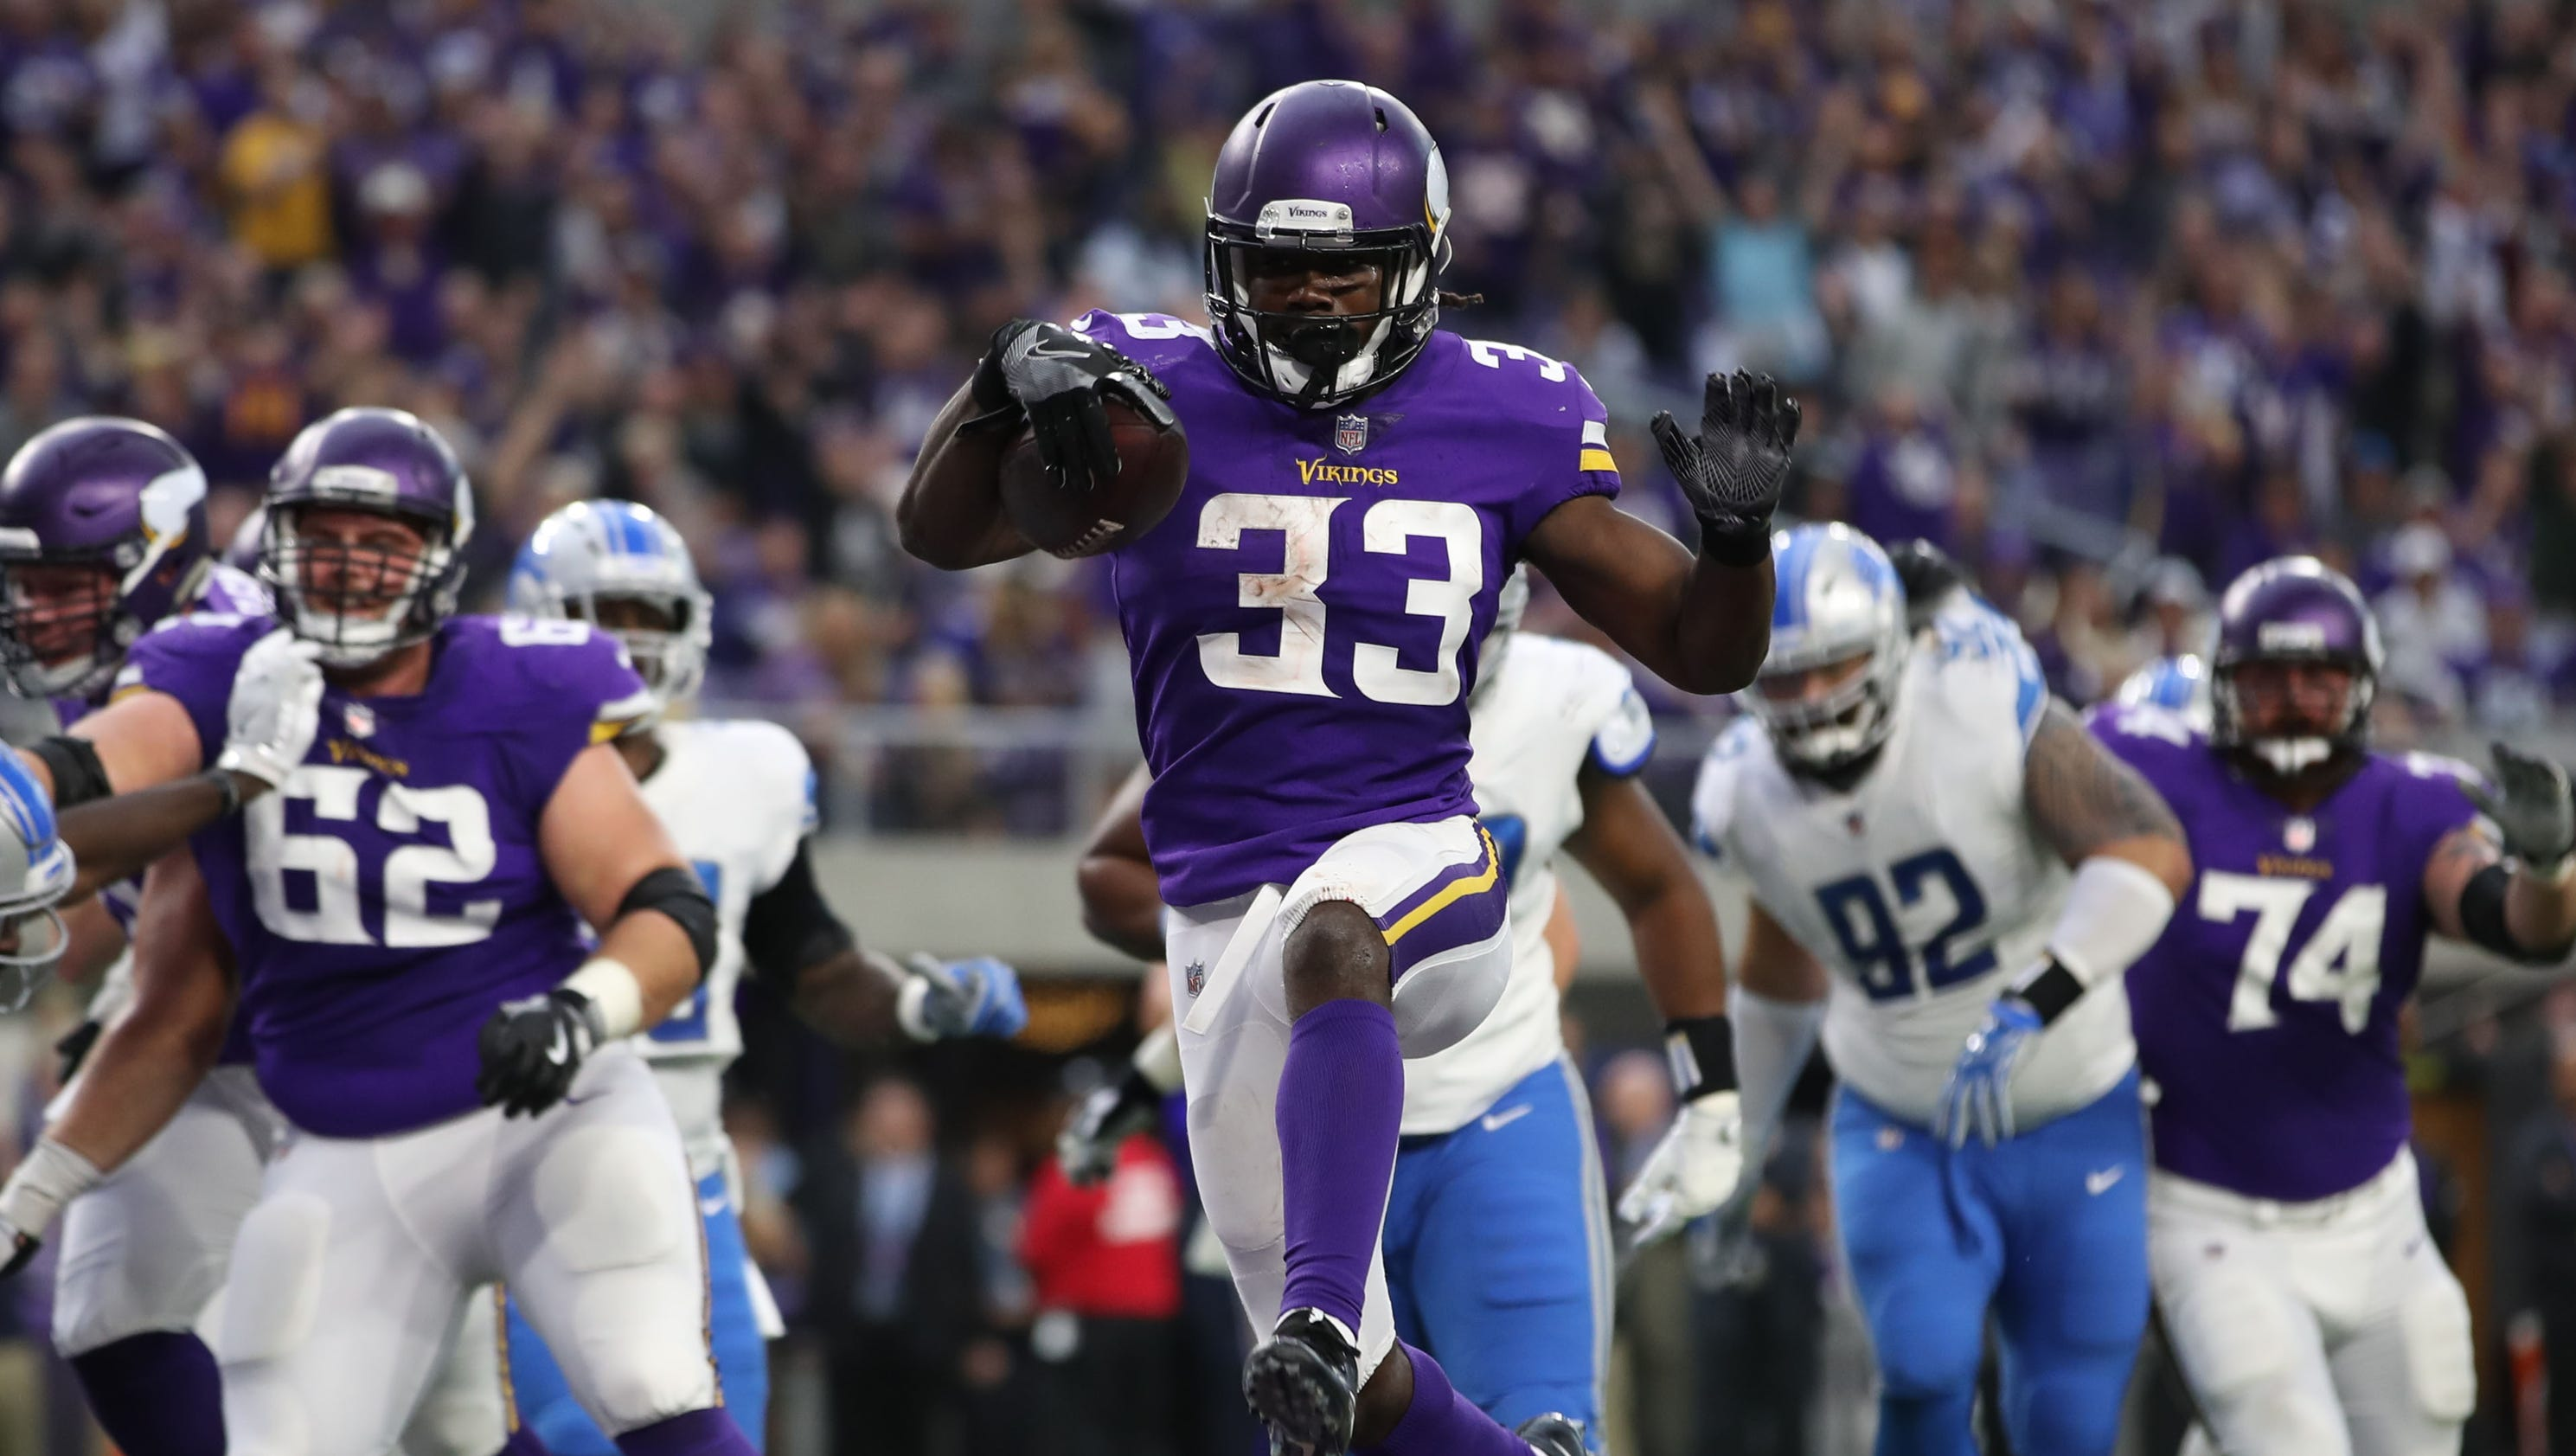 636424755346188622-usp-nfl-detroit-lions-at-minnesota-vikings-94262853